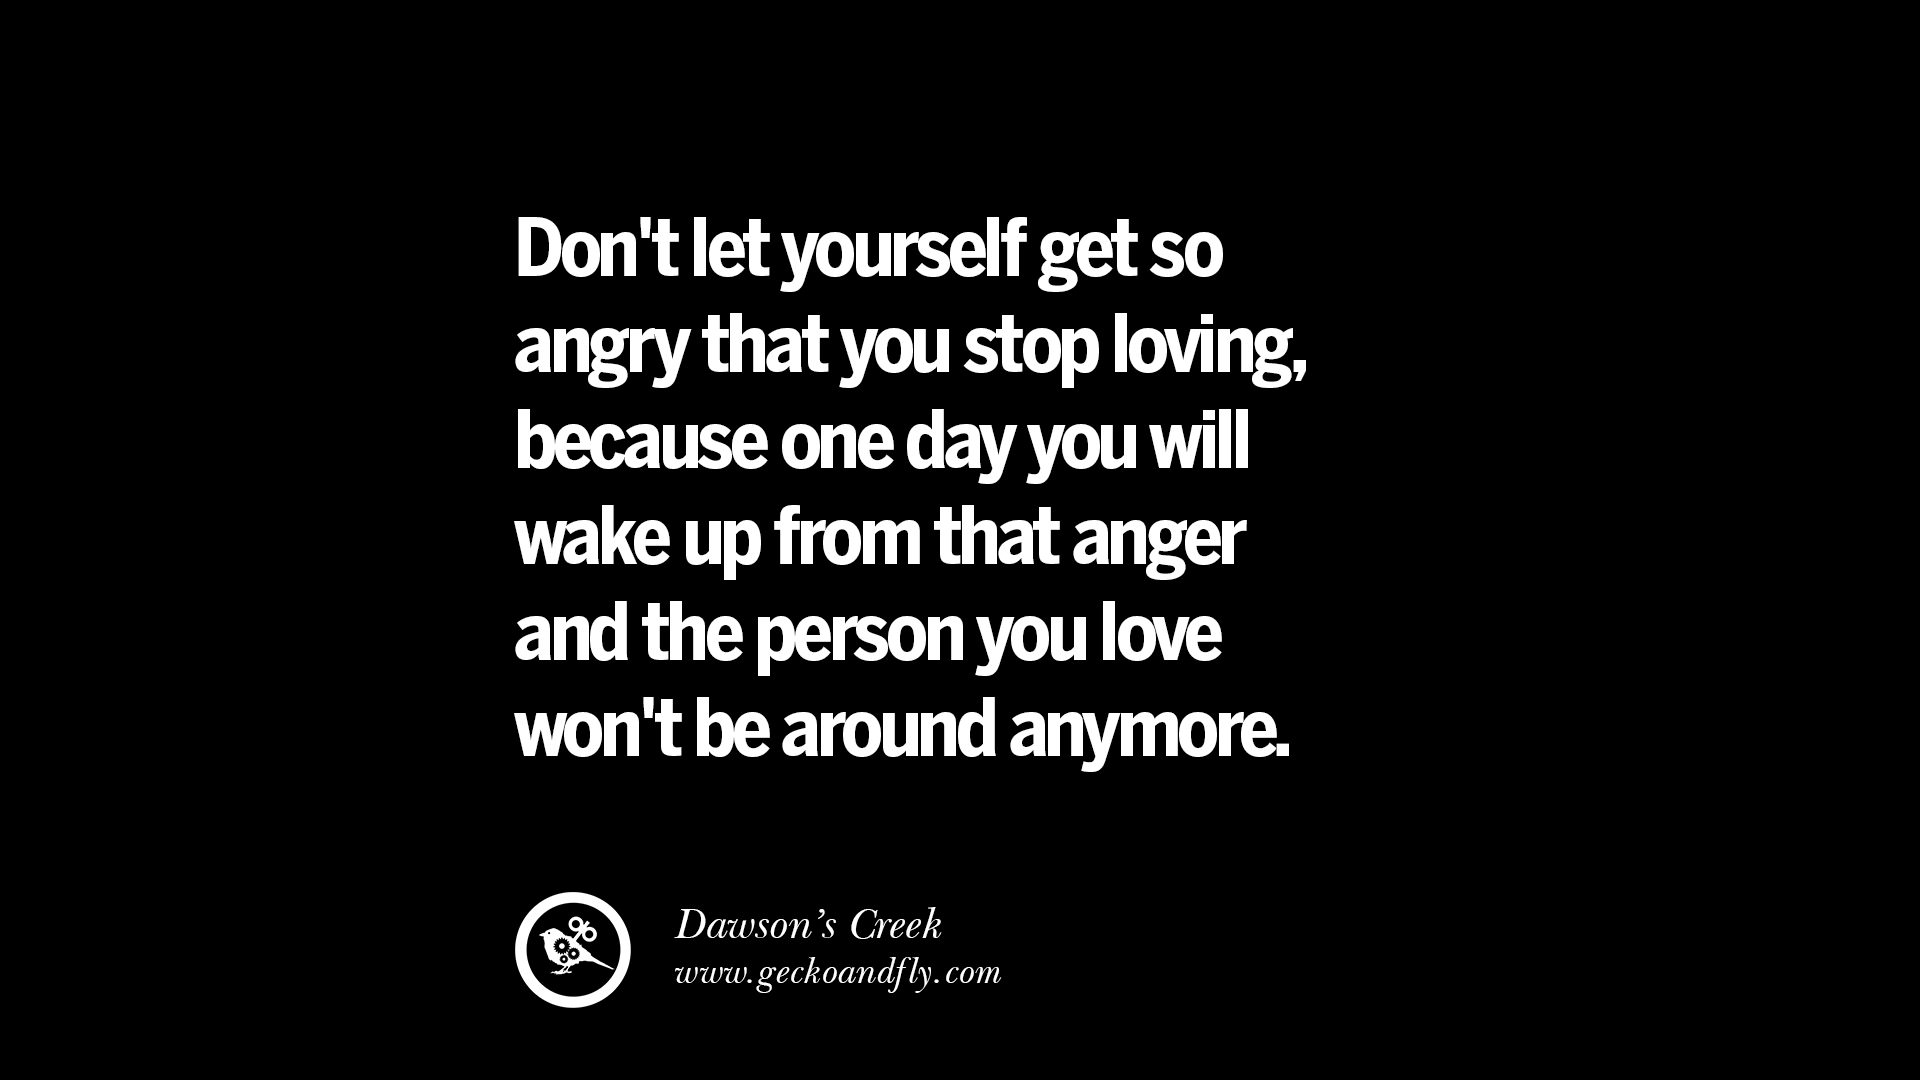 Dont let yourself get so angry that you stop loving because one day you will wake up from that anger and the person you love wont be around anymore